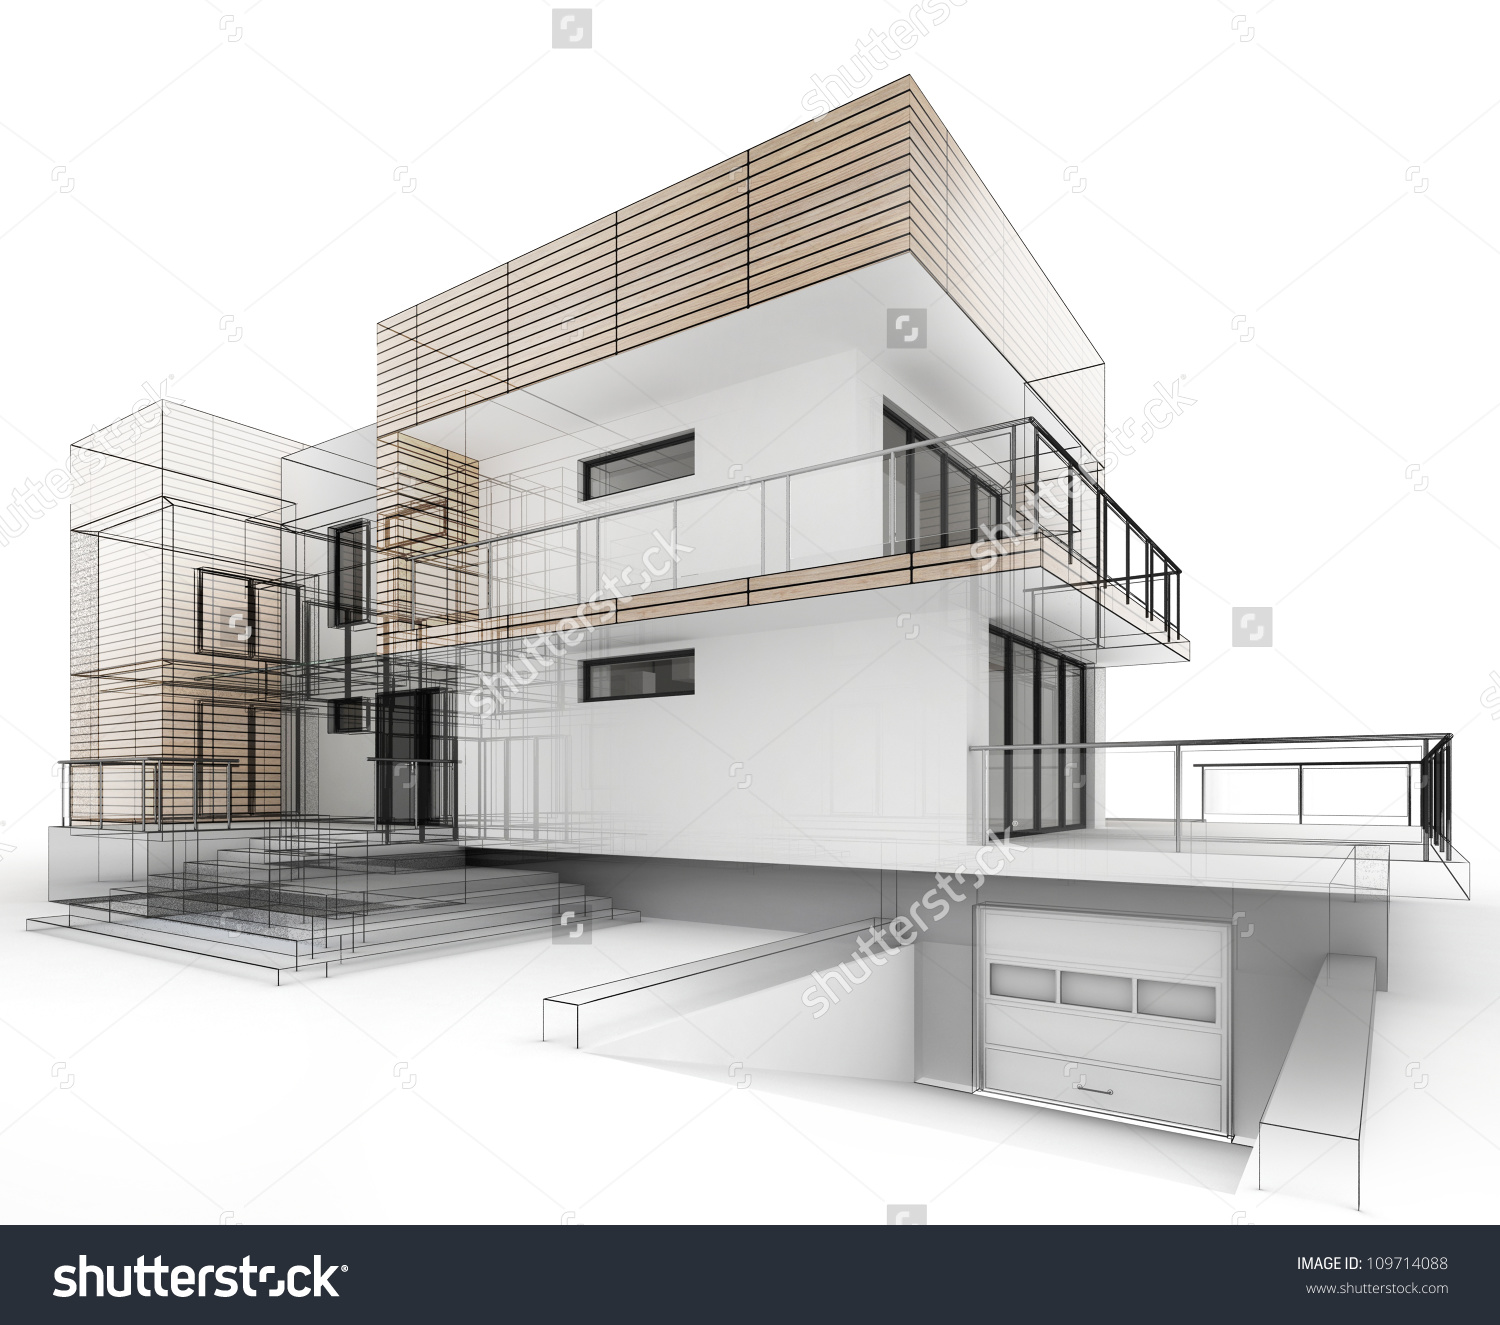 architectural drawings of houses. 1500x1325 House Design Progress Architecture Drawing And Visualization Architectural Drawings Of Houses W